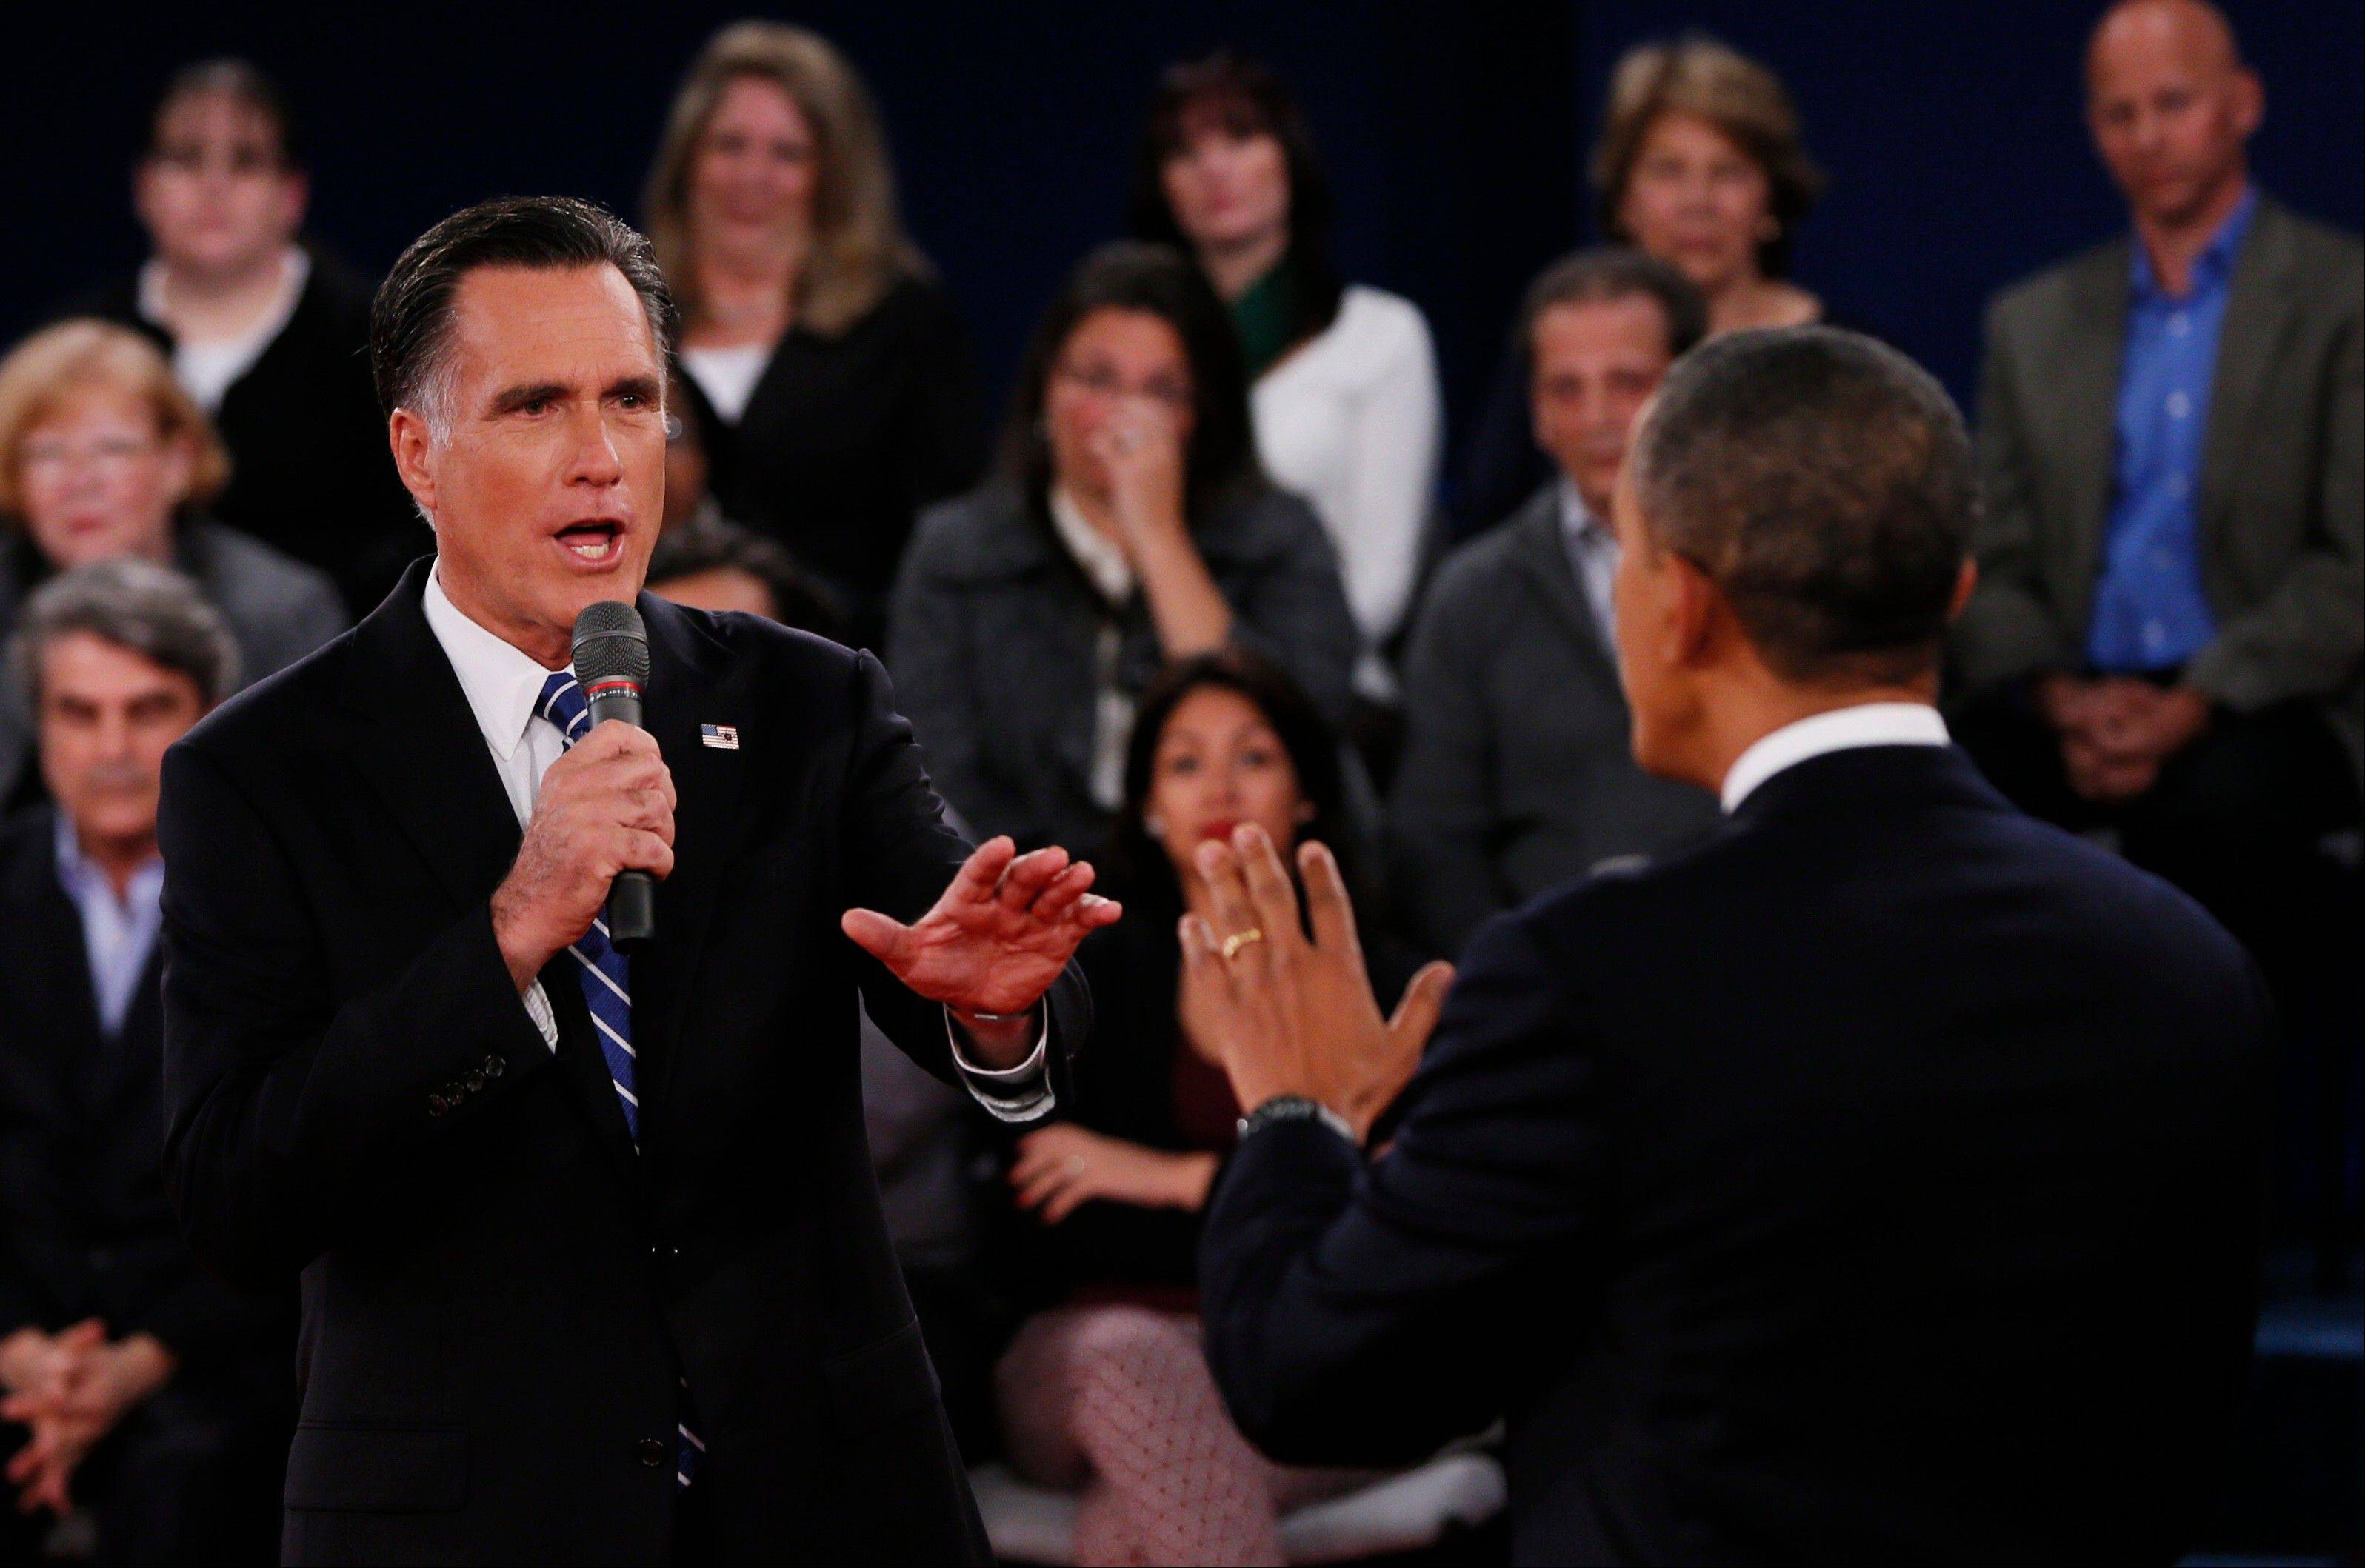 Republican presidential nominee Mitt Romney, left, addresses President Barack Obama during the second presidential debate at Hofstra University, Tuesday, Oct. 16, 2012, in Hempstead, N.Y.